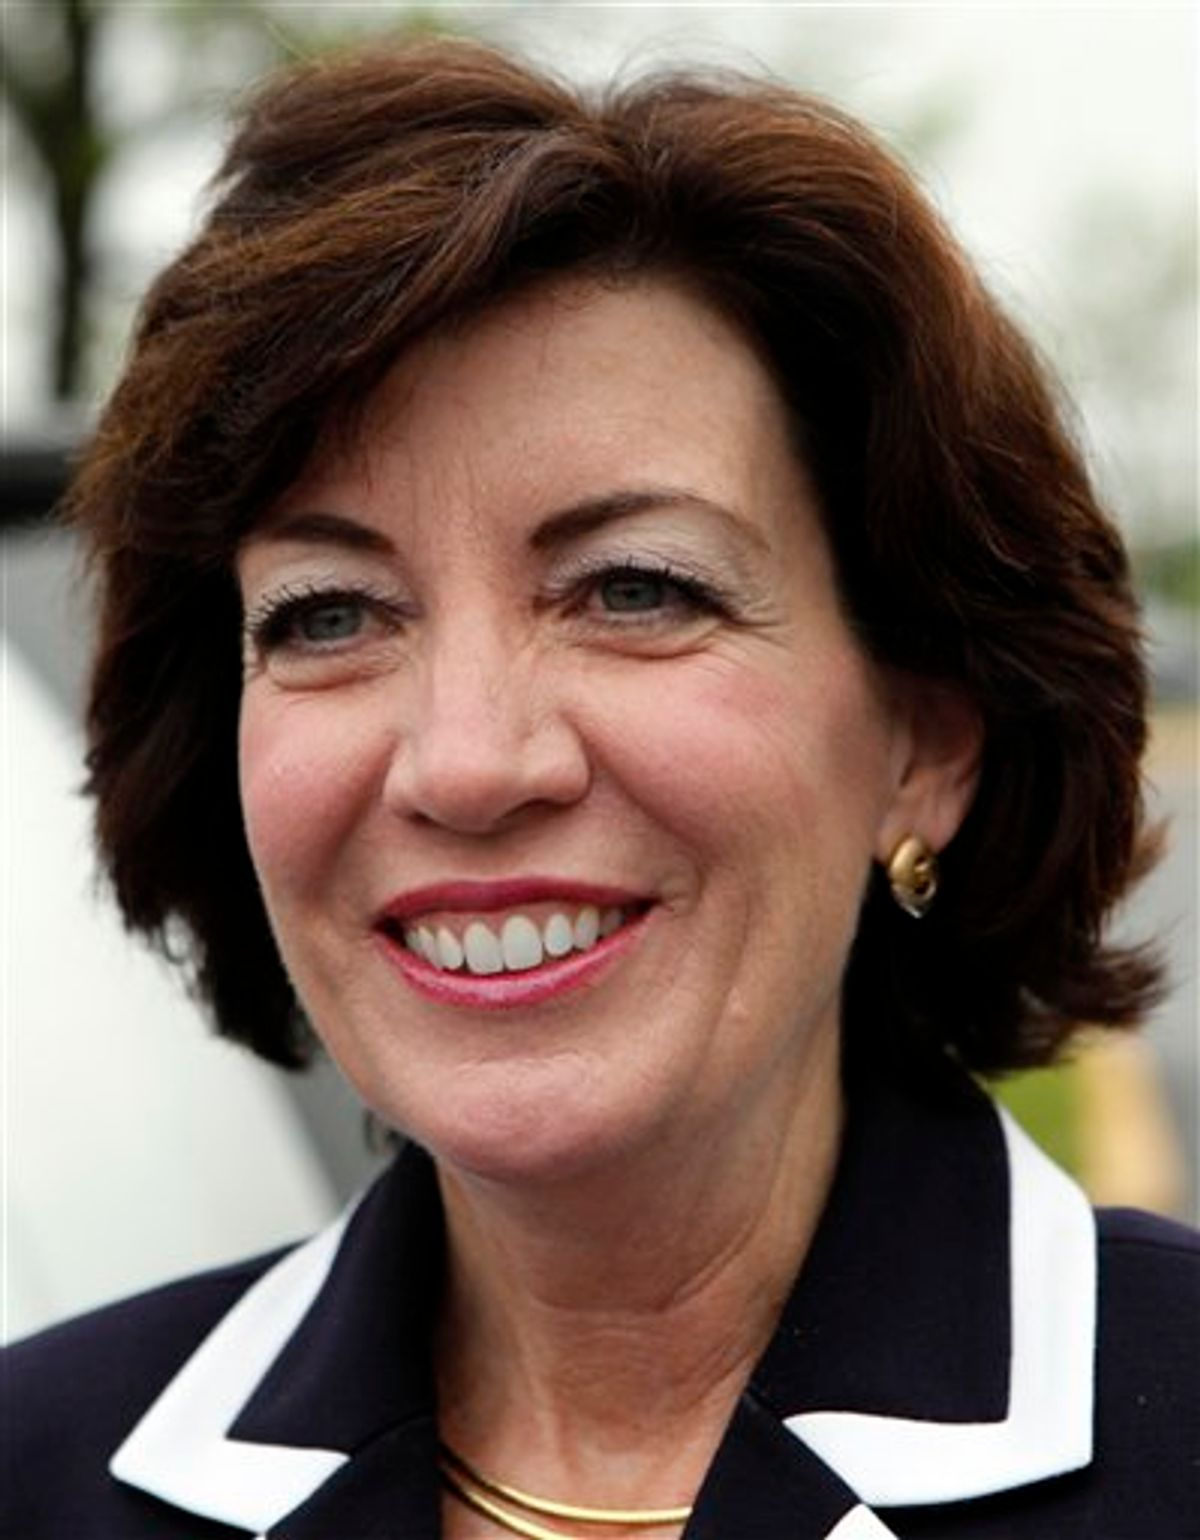 Democratic candidate for the 26th District Congressional seat, Kathy Hochul arrives at a campaign stop at a restaurant in Amherst, N.Y., Tuesday, May 24, 2011.   Hochul is running against Republican Jane Corwin and tea party candidate Jack Davis in the race to succeed Republican Chris Lee. Lee resigned in February after shirtless photos surfaced that he'd sent to a woman on Craigslist. (AP Photo/David Duprey) (AP)